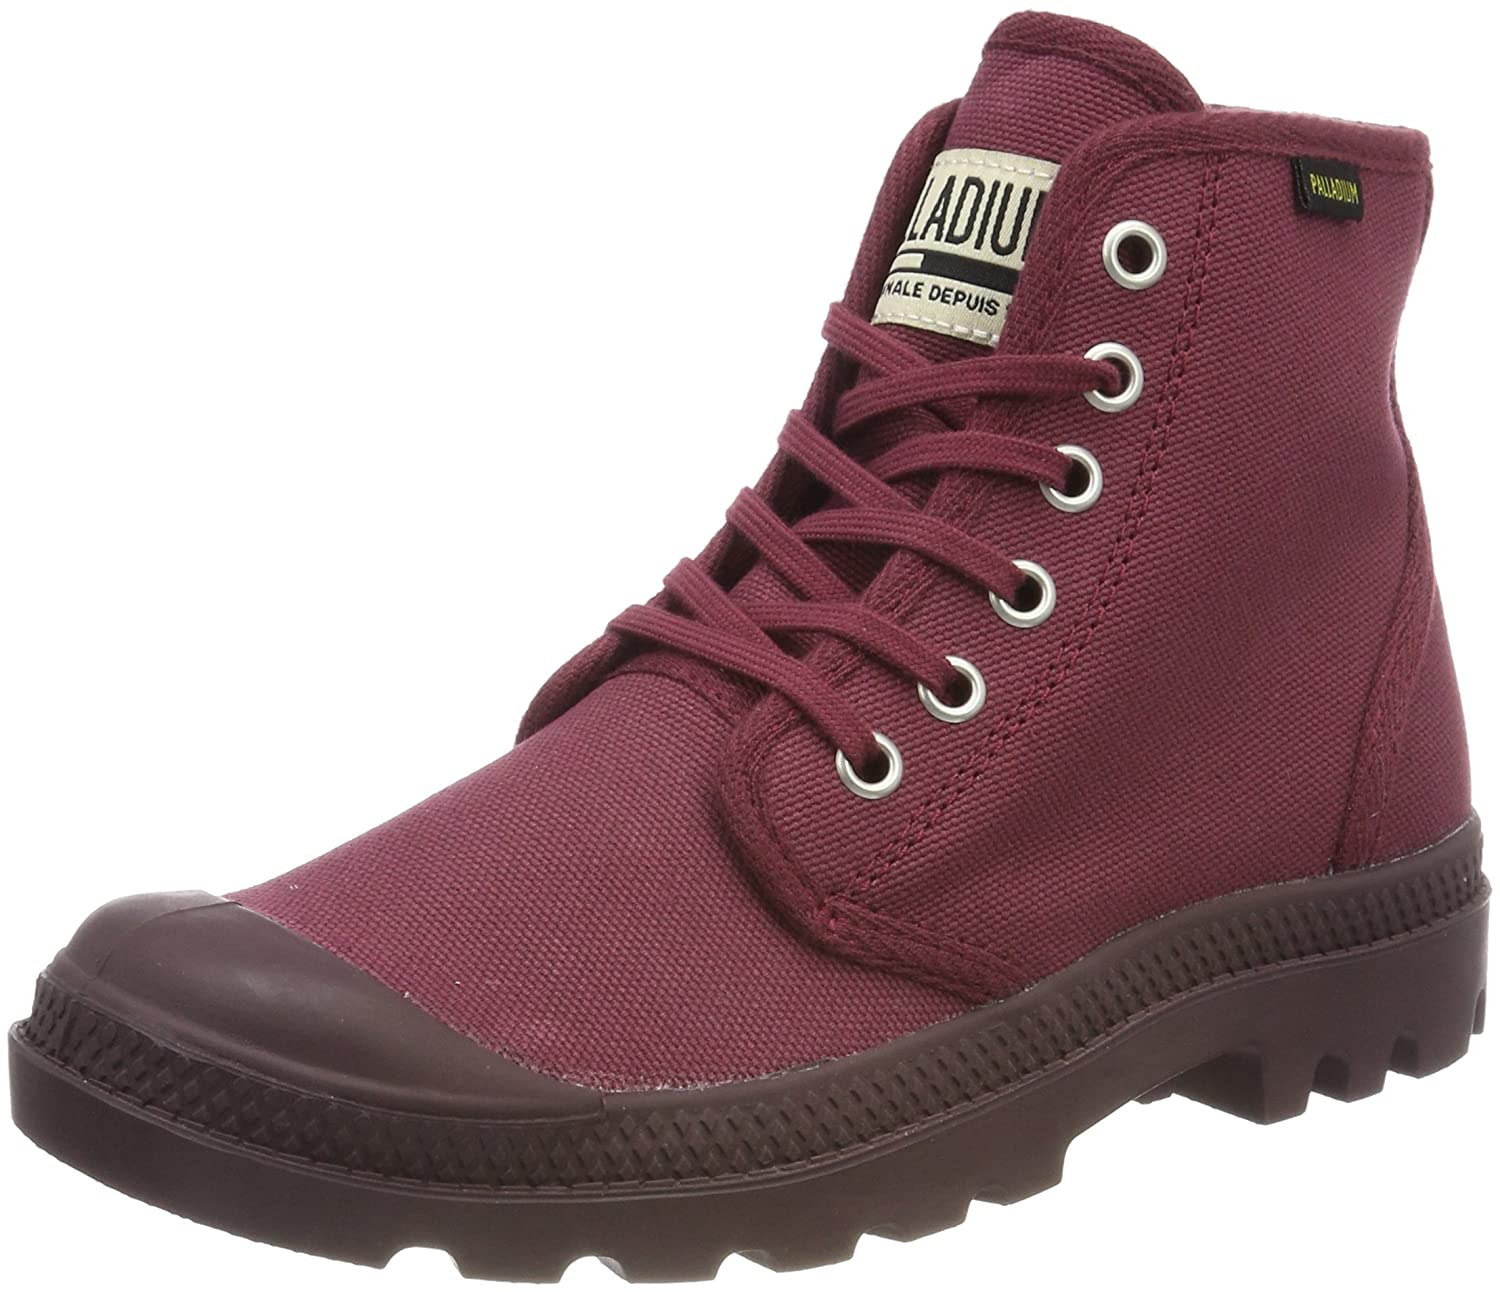 Palladium Pampa Hi Originale, Sneaker a Collo Alto Unisex – Adulto